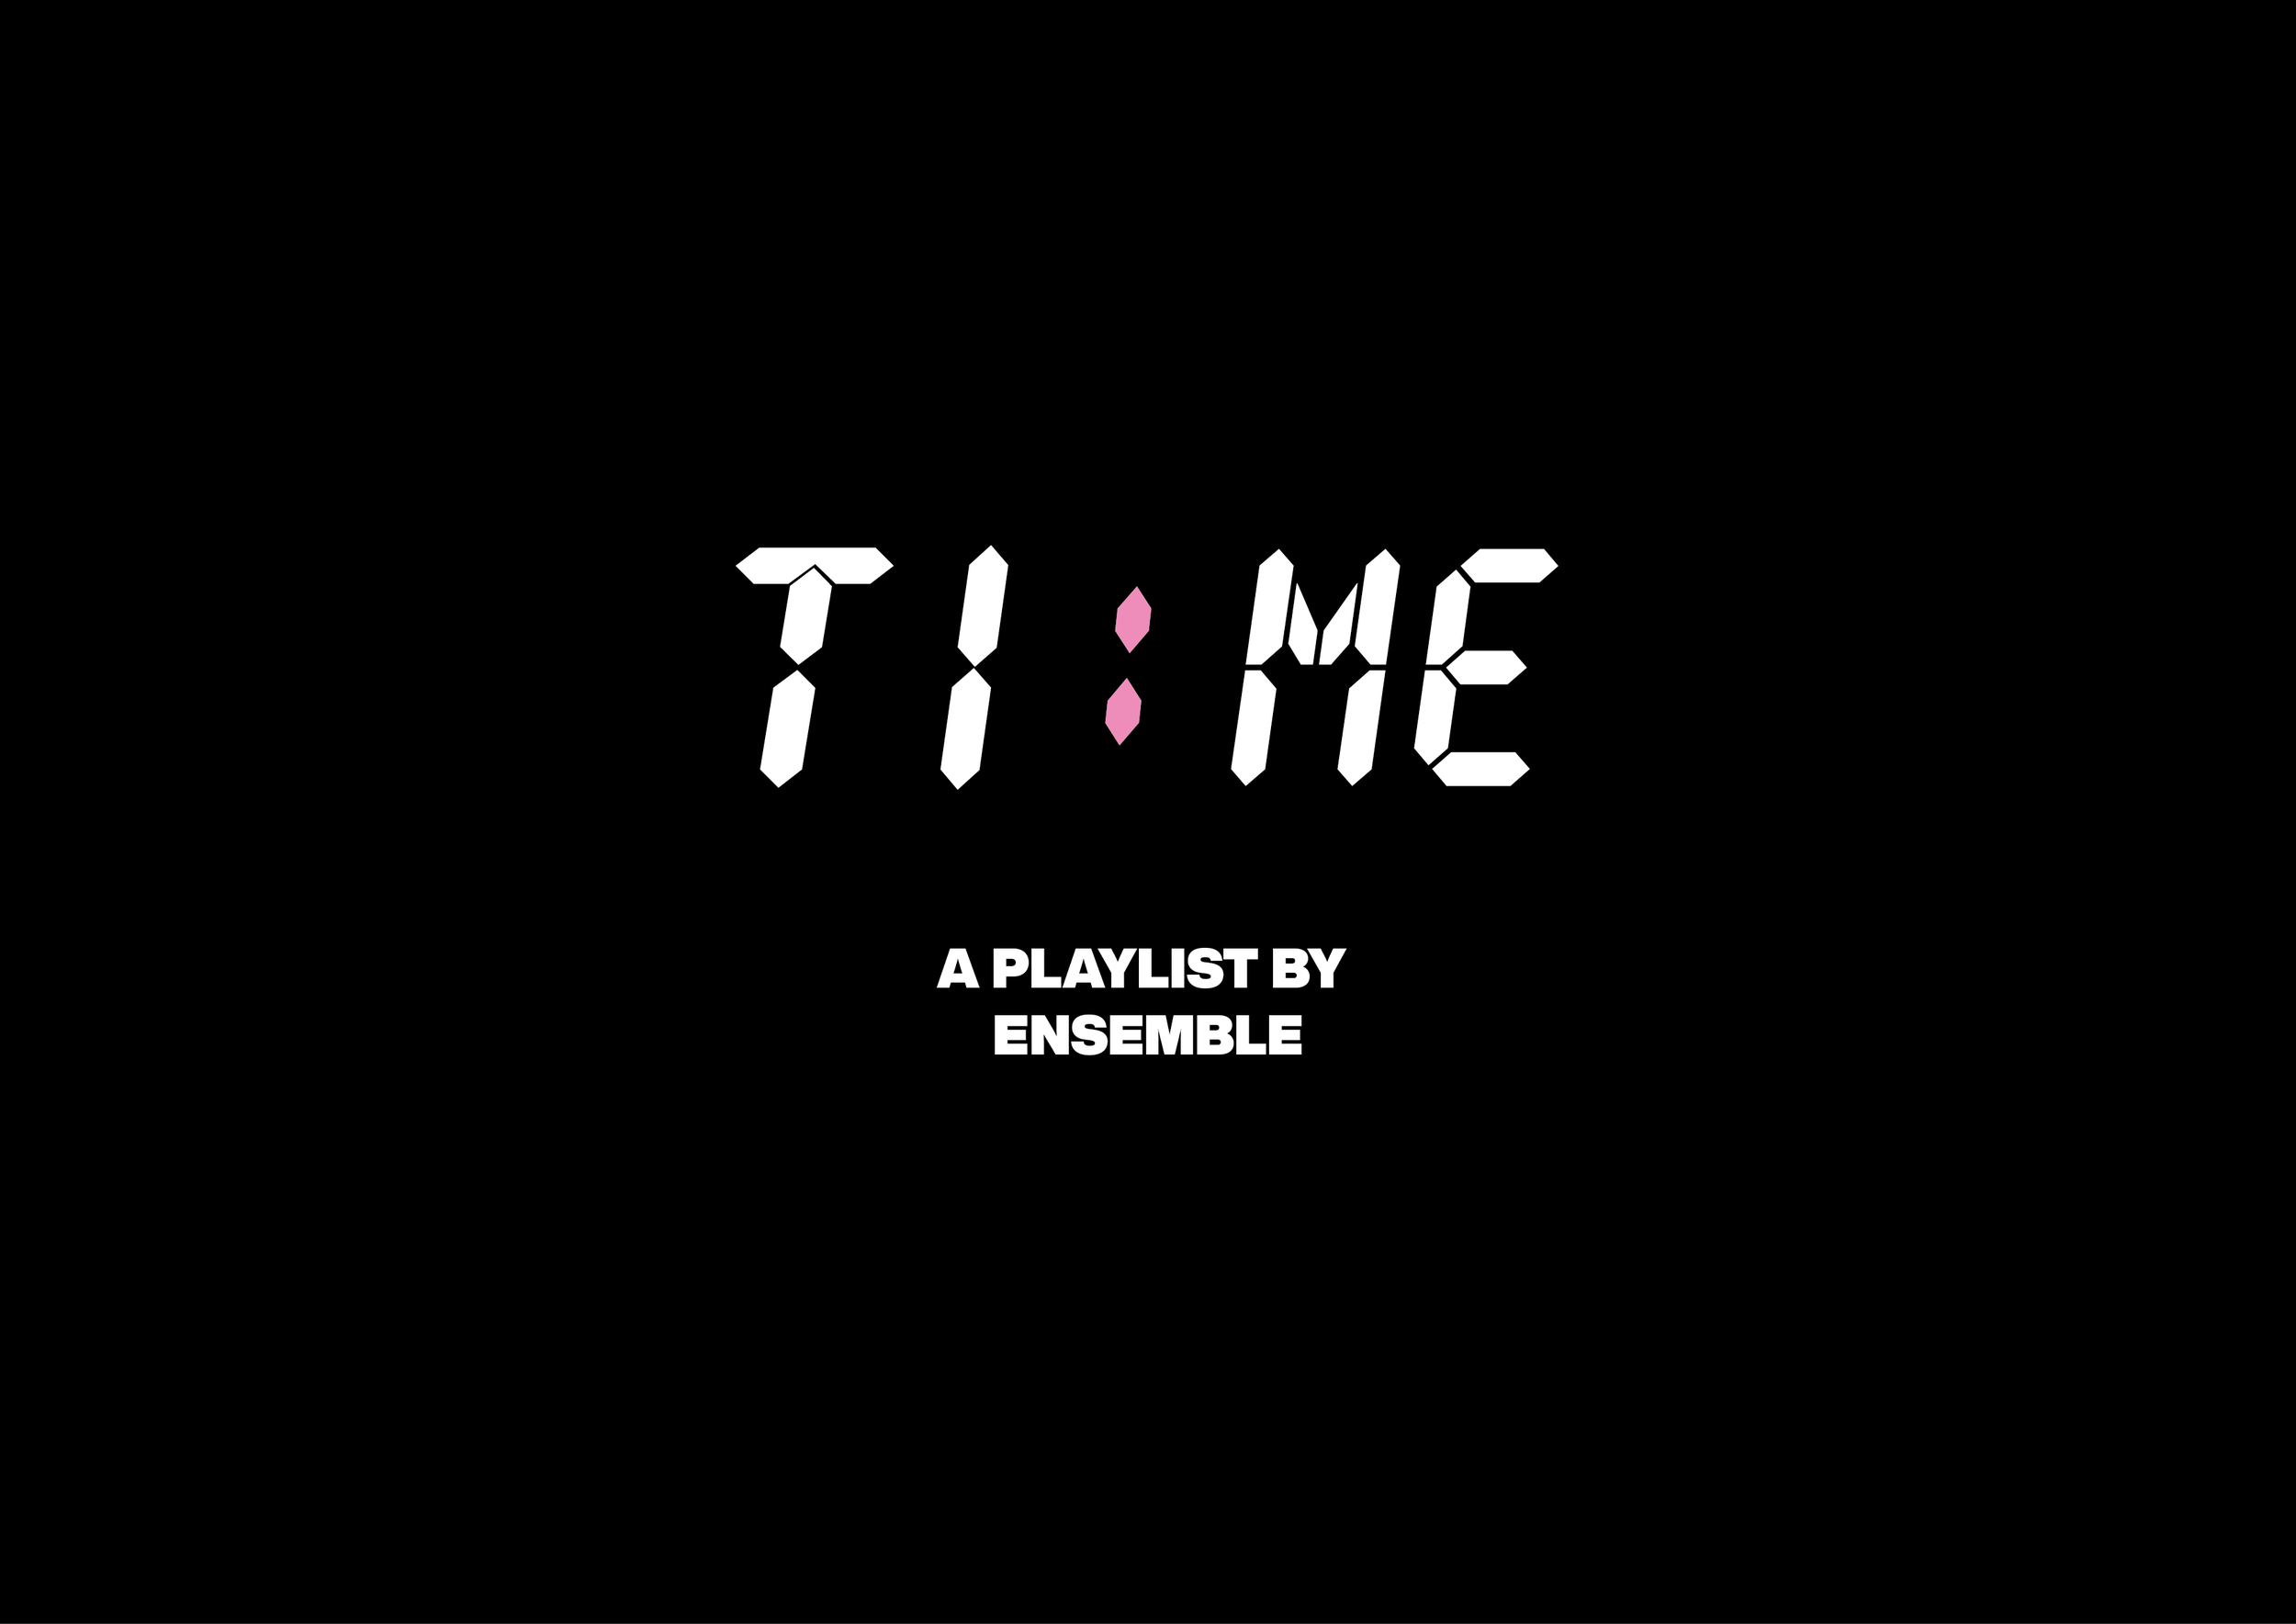 TI:ME PLAYLIST - When Ensemble tells you what to listen